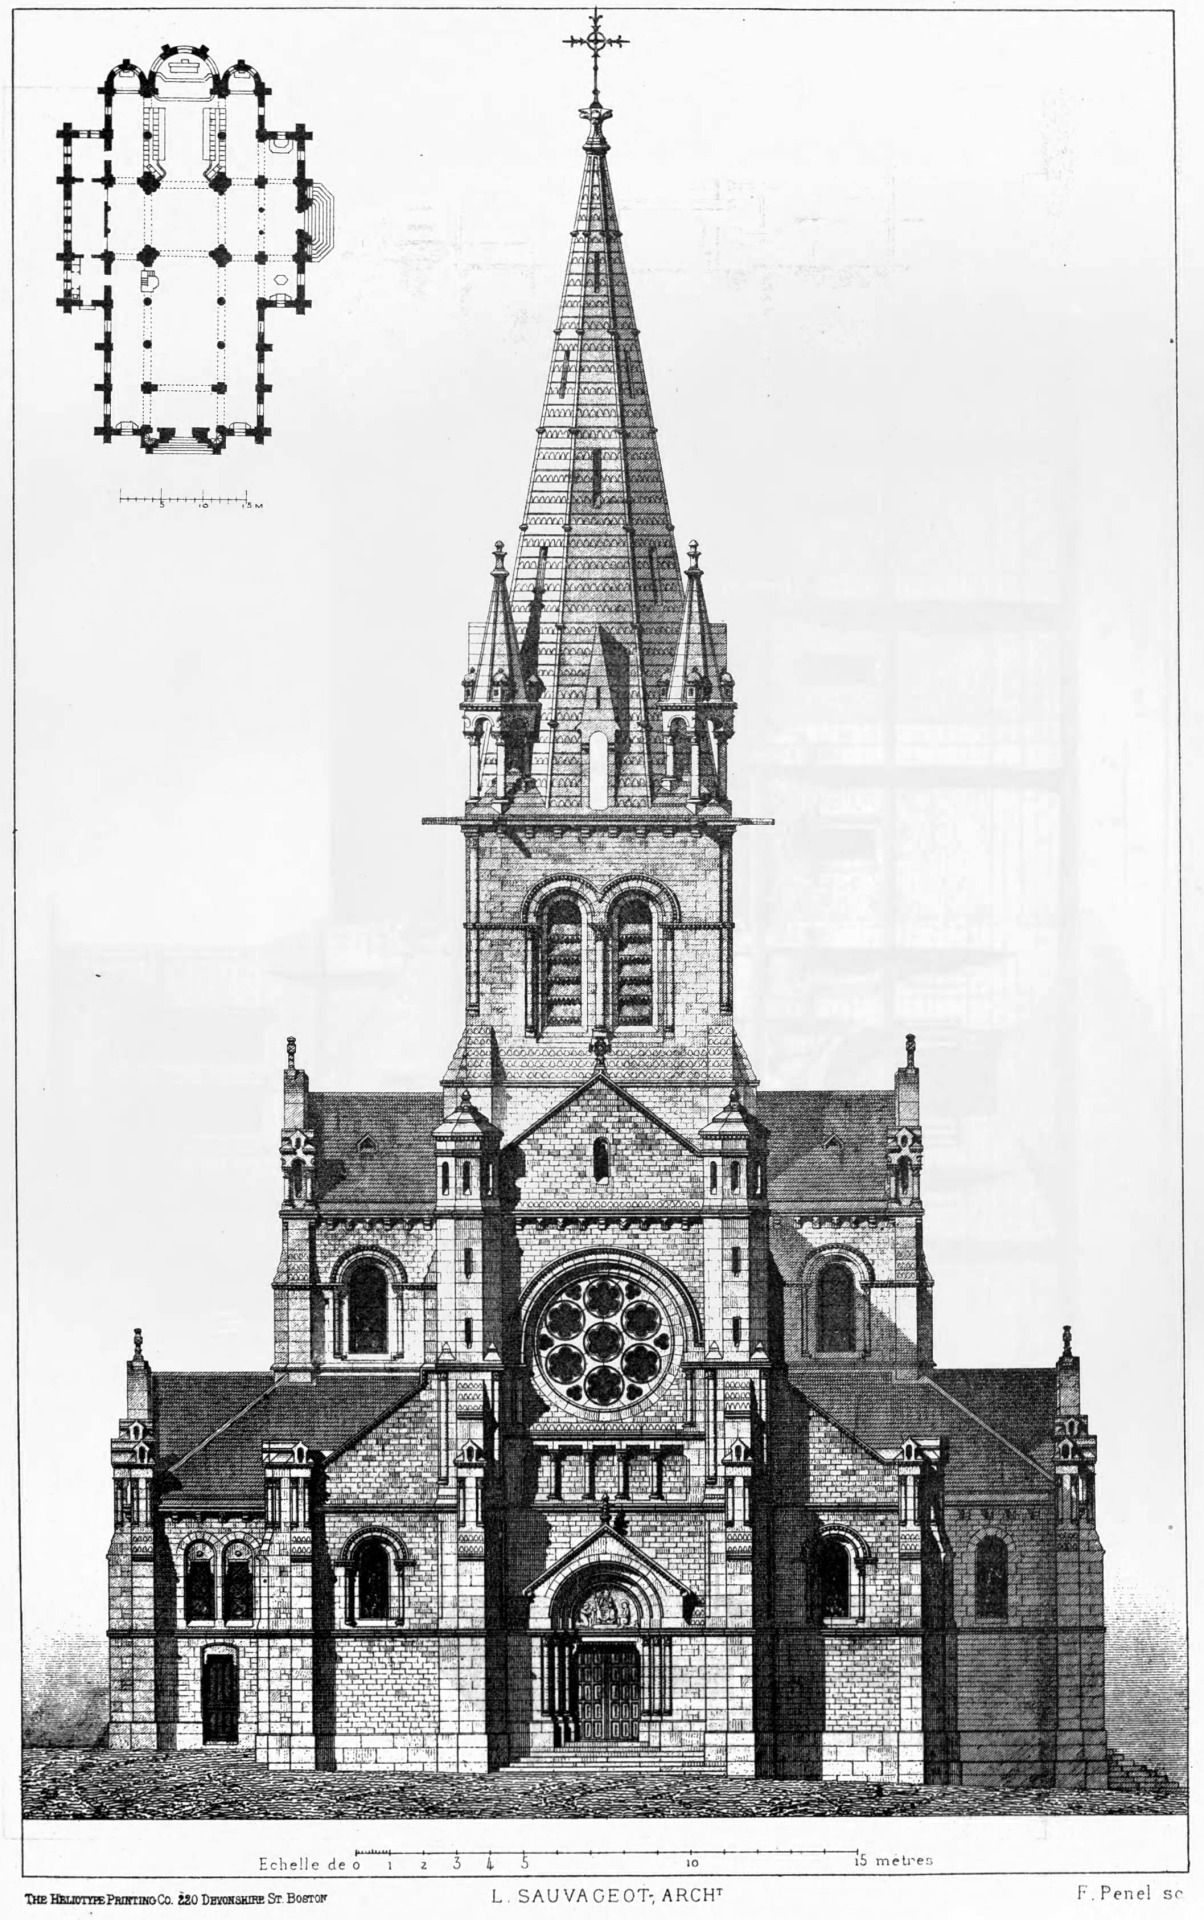 Elevation Church Plan A Visit : Elevation and plan of the church saint hilaire rouen